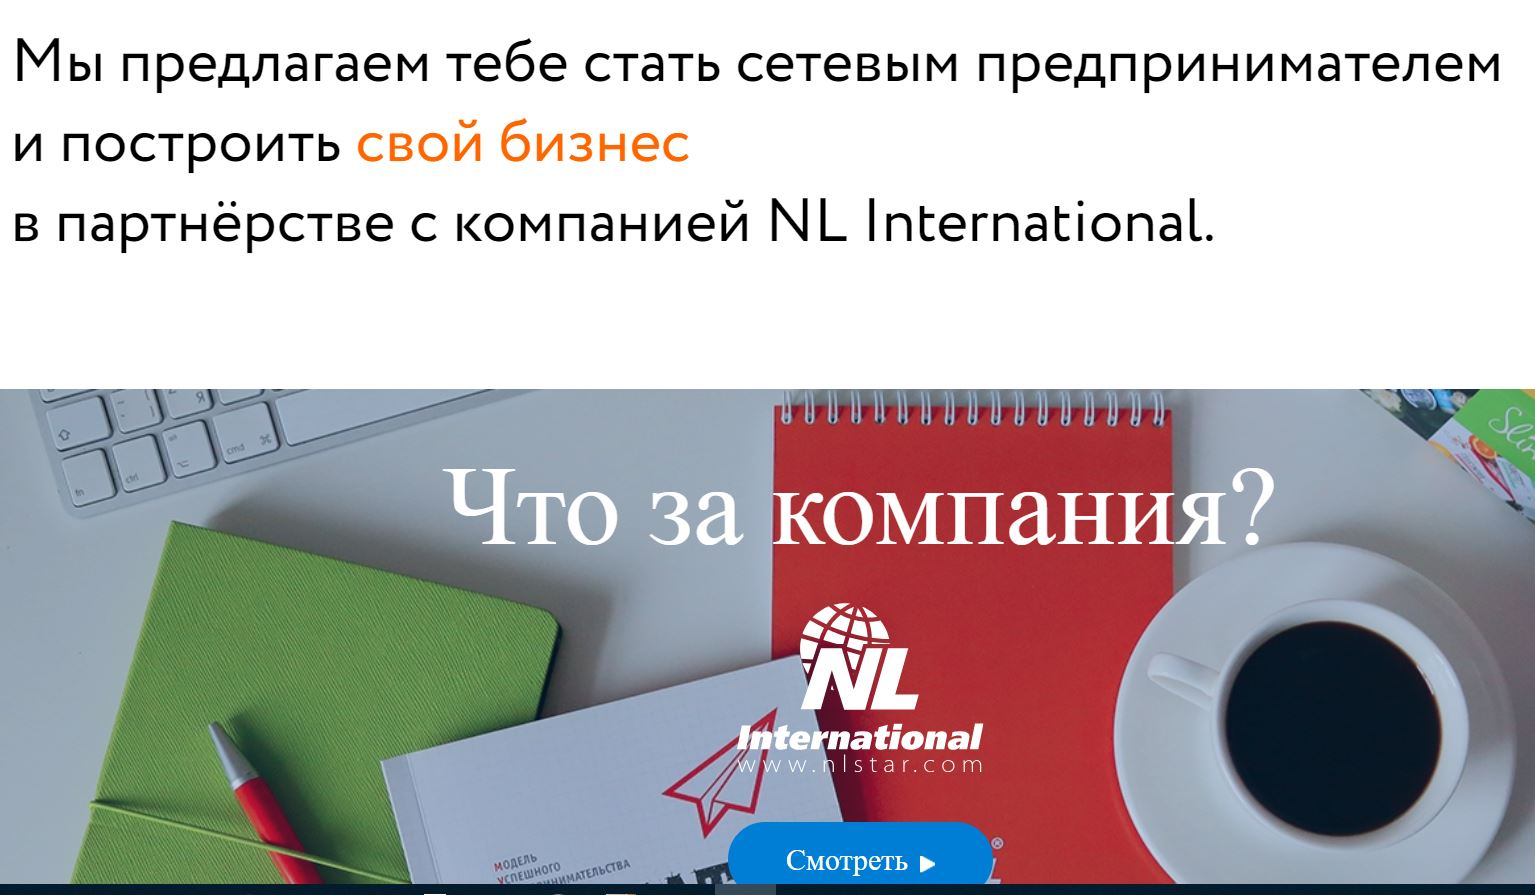 NL International: классика развода лохов